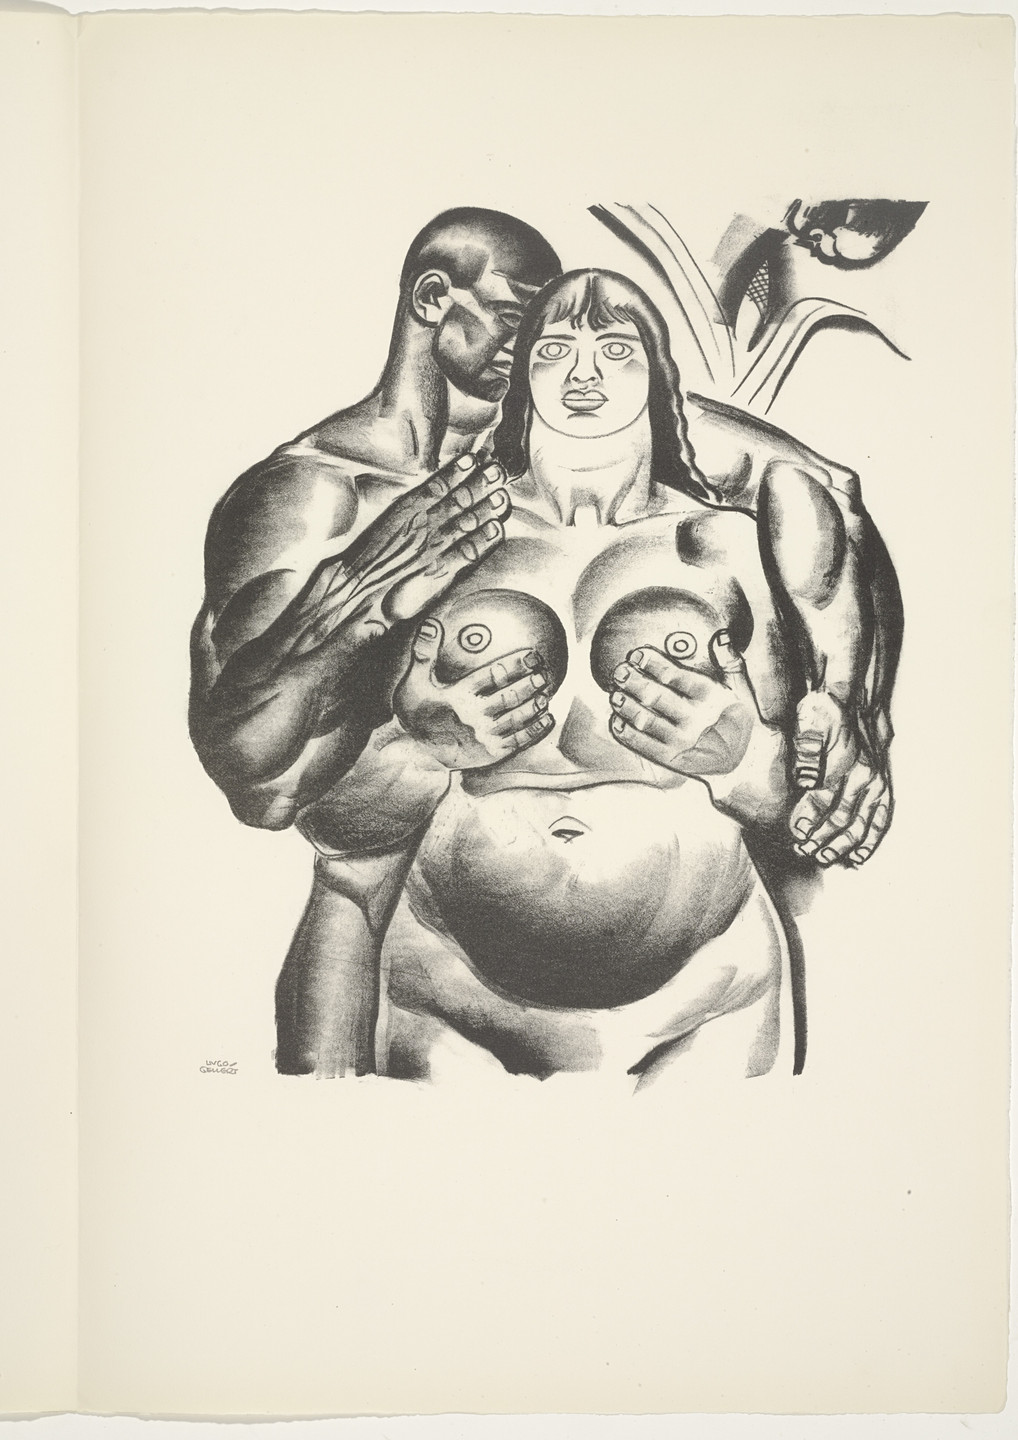 Hugo Gellert. Plate (folio 50) from 'Capital' in Pictures. 1933